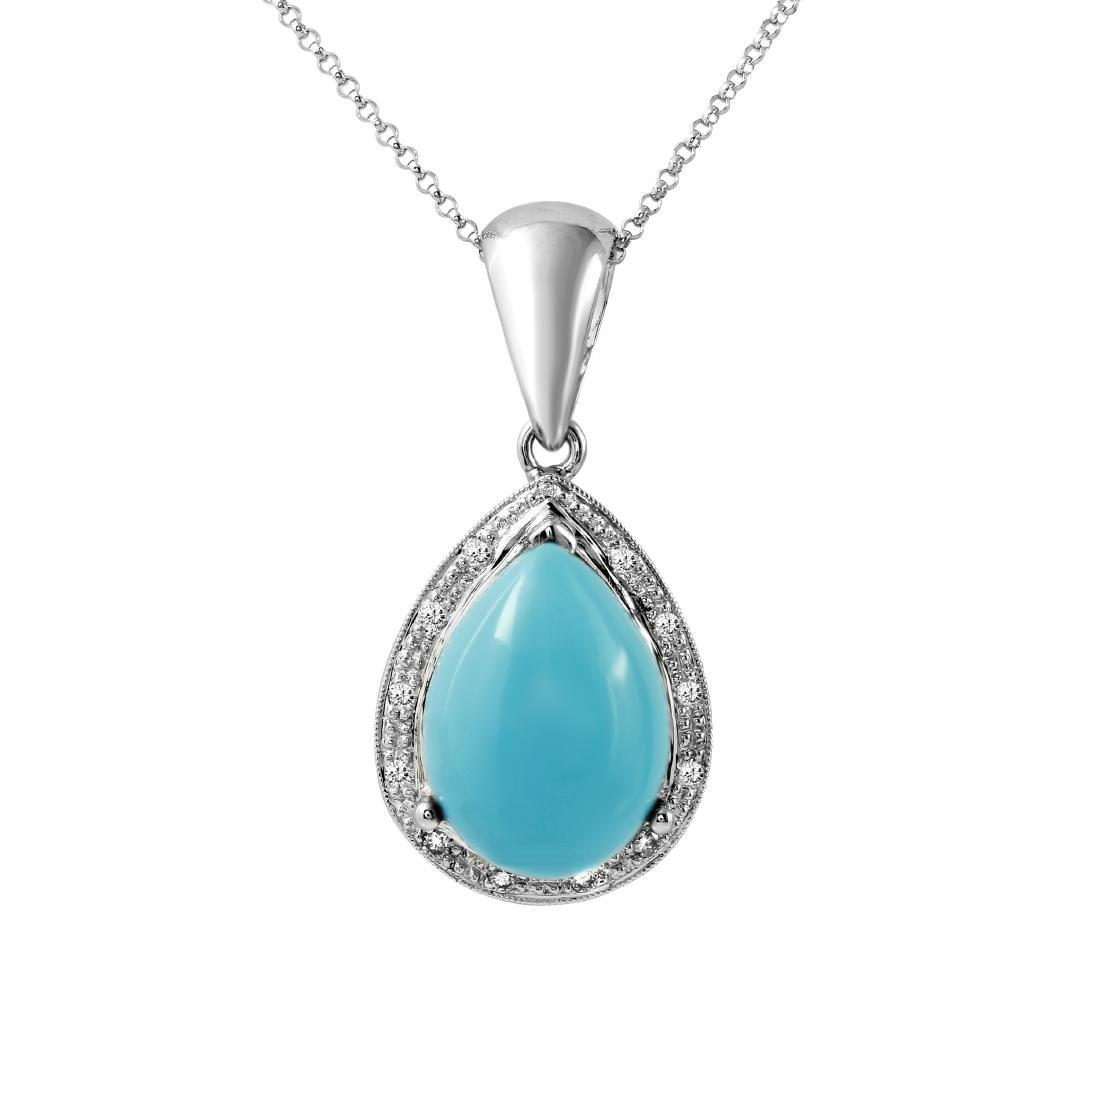 14KT White Gold 9.08ct Turquoise and Diamond Pendant